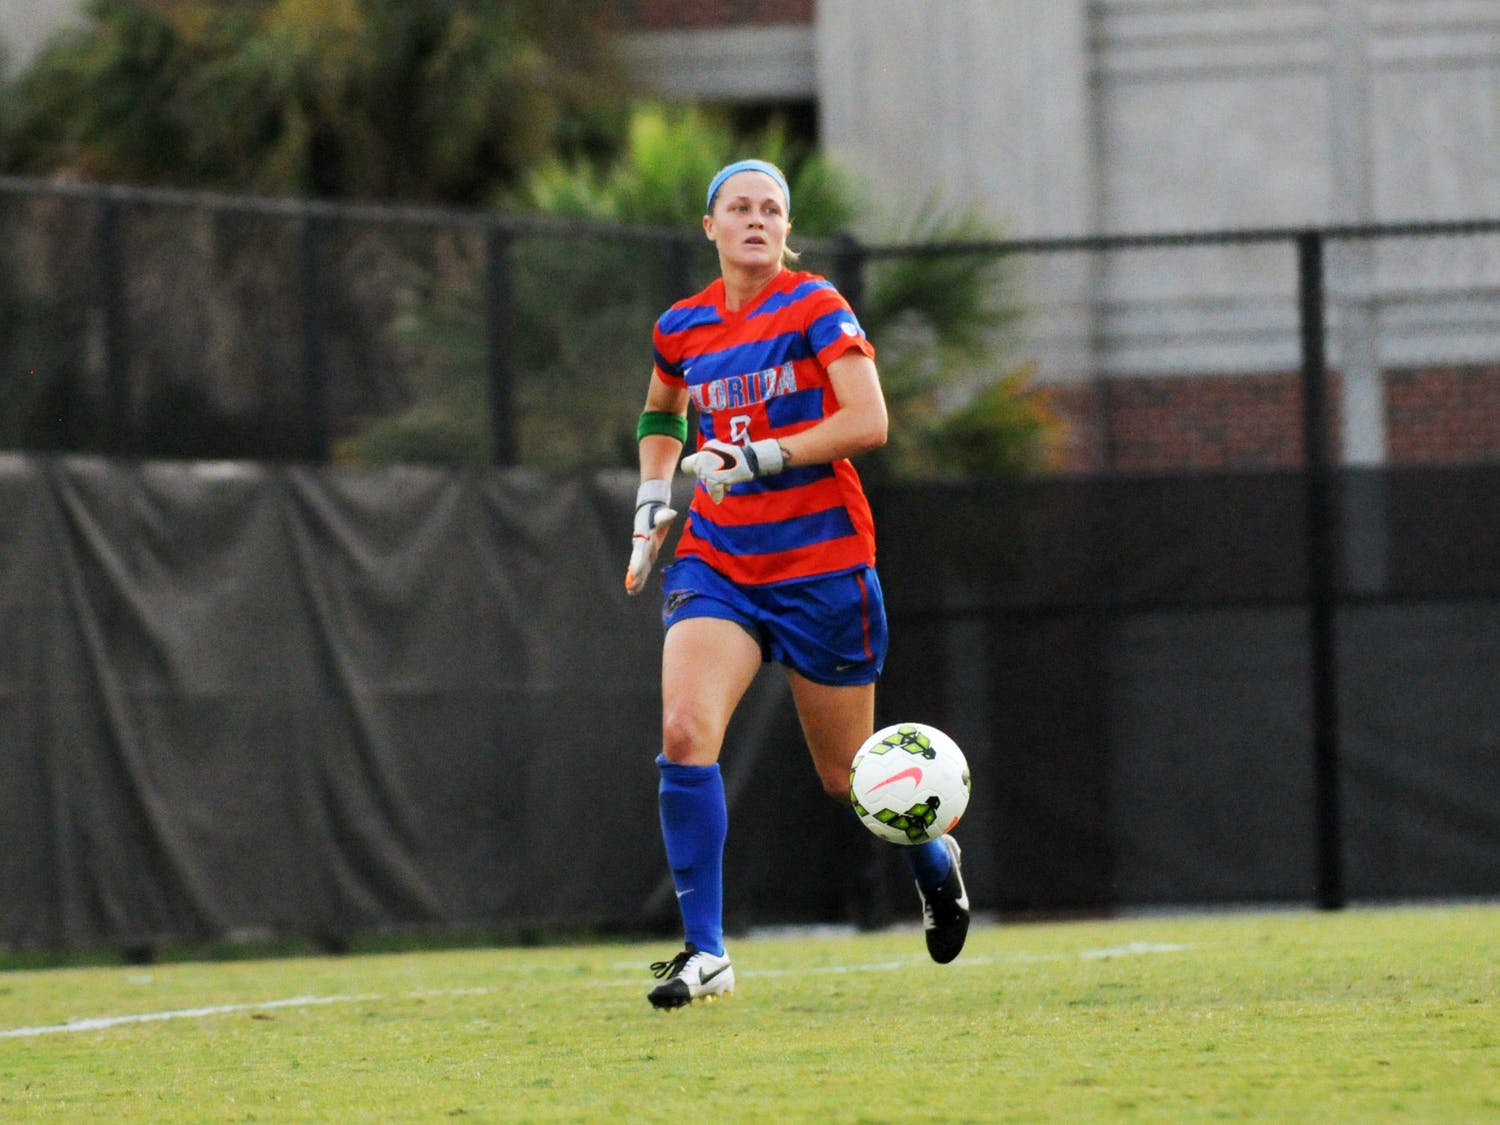 Goalkeeper Val Tysinger chases the ball during Florida's 2-1 win against Troy in an exhibition match on Aug. 11, 2015, at the soccer practice field at Donald R. Dizney Stadium.